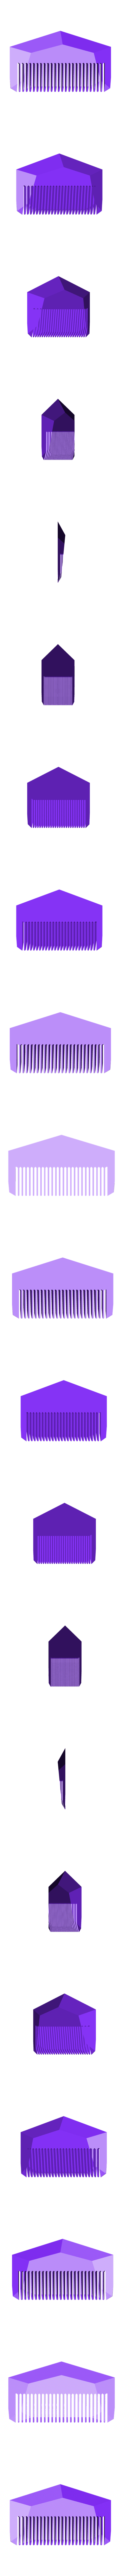 customized_beard_comb_no4.stl Download free STL file Customizable Comb • 3D printable model, MightyNozzle